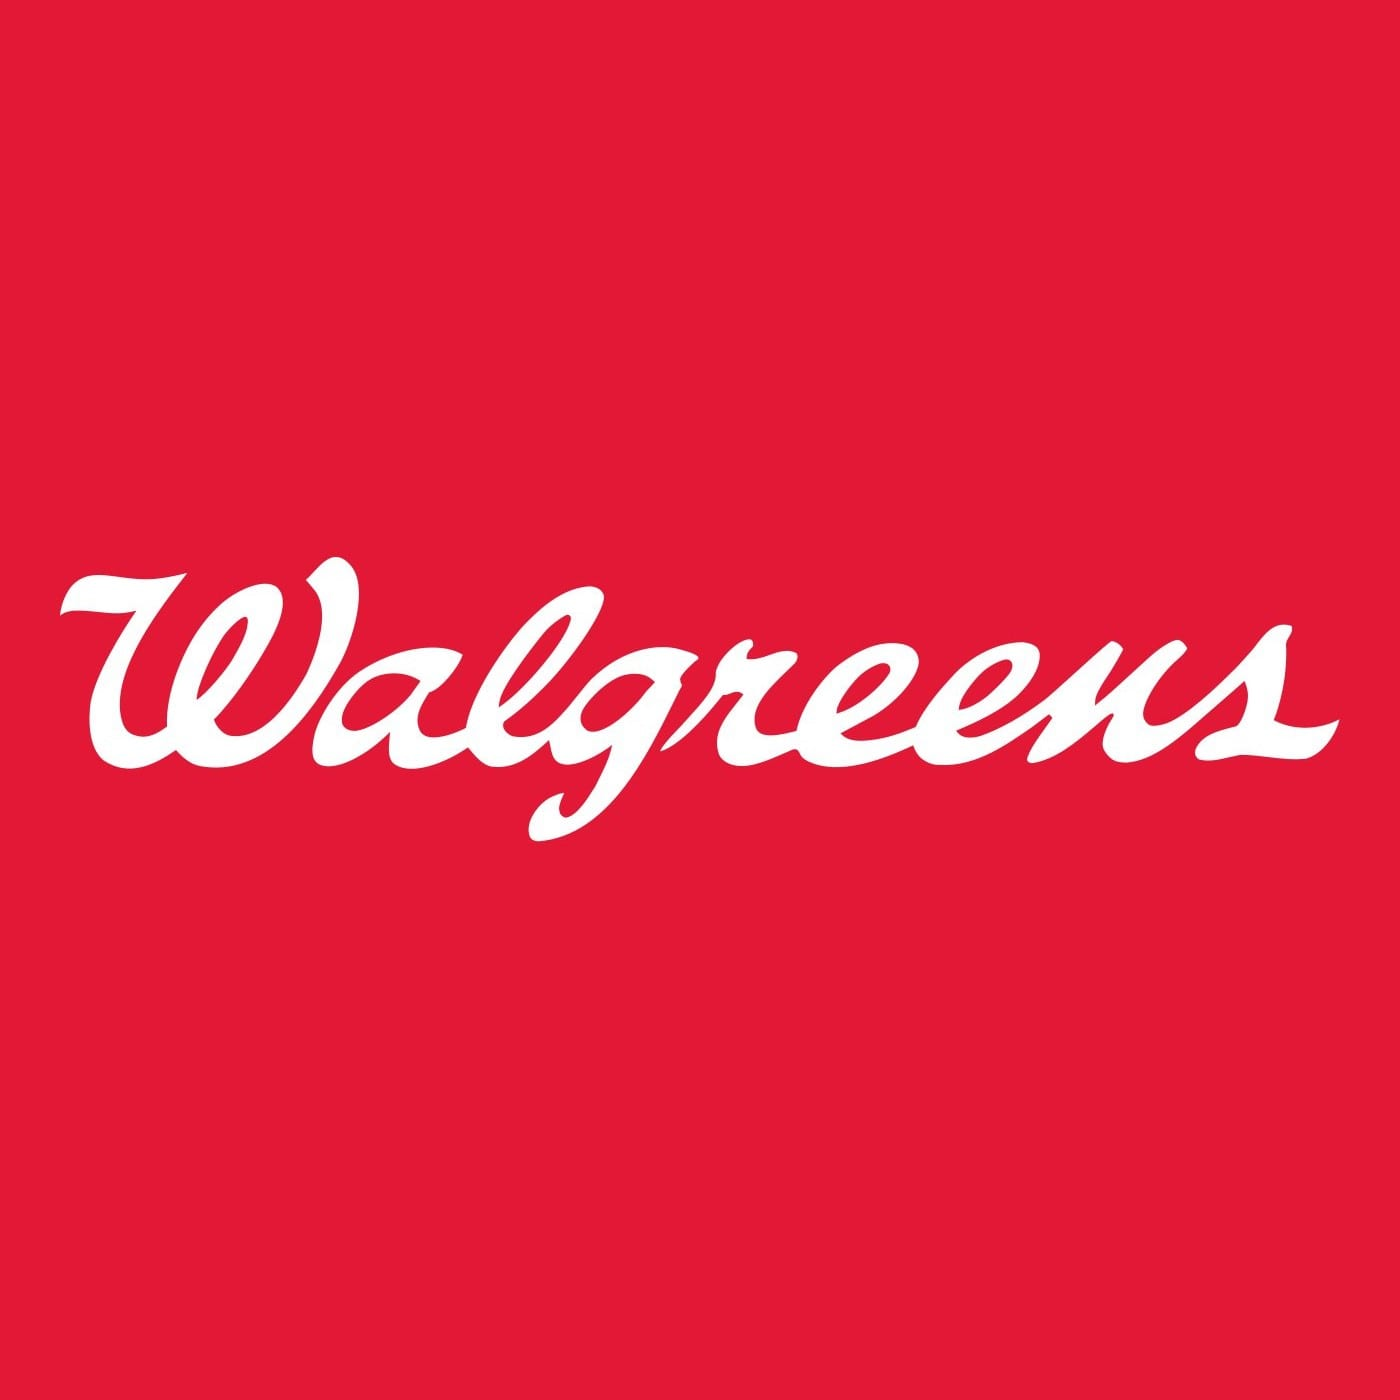 Buy 1 Get 1 FREE Walgreens Brand Batteries + Same Day Order Pickup!